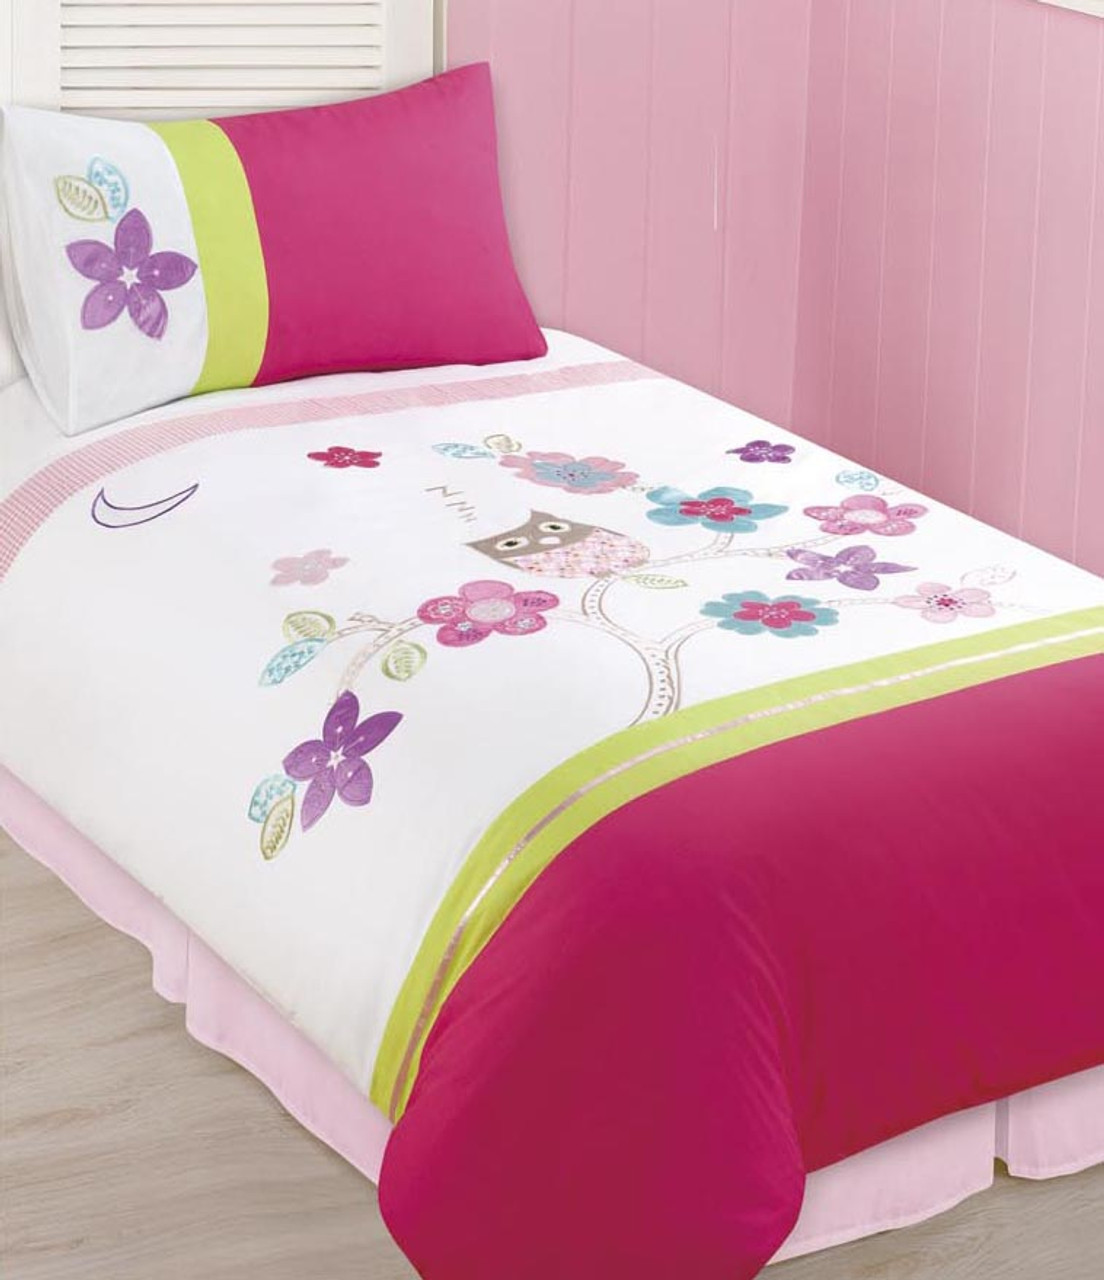 Kids Embroidered Quilt Cover Sets